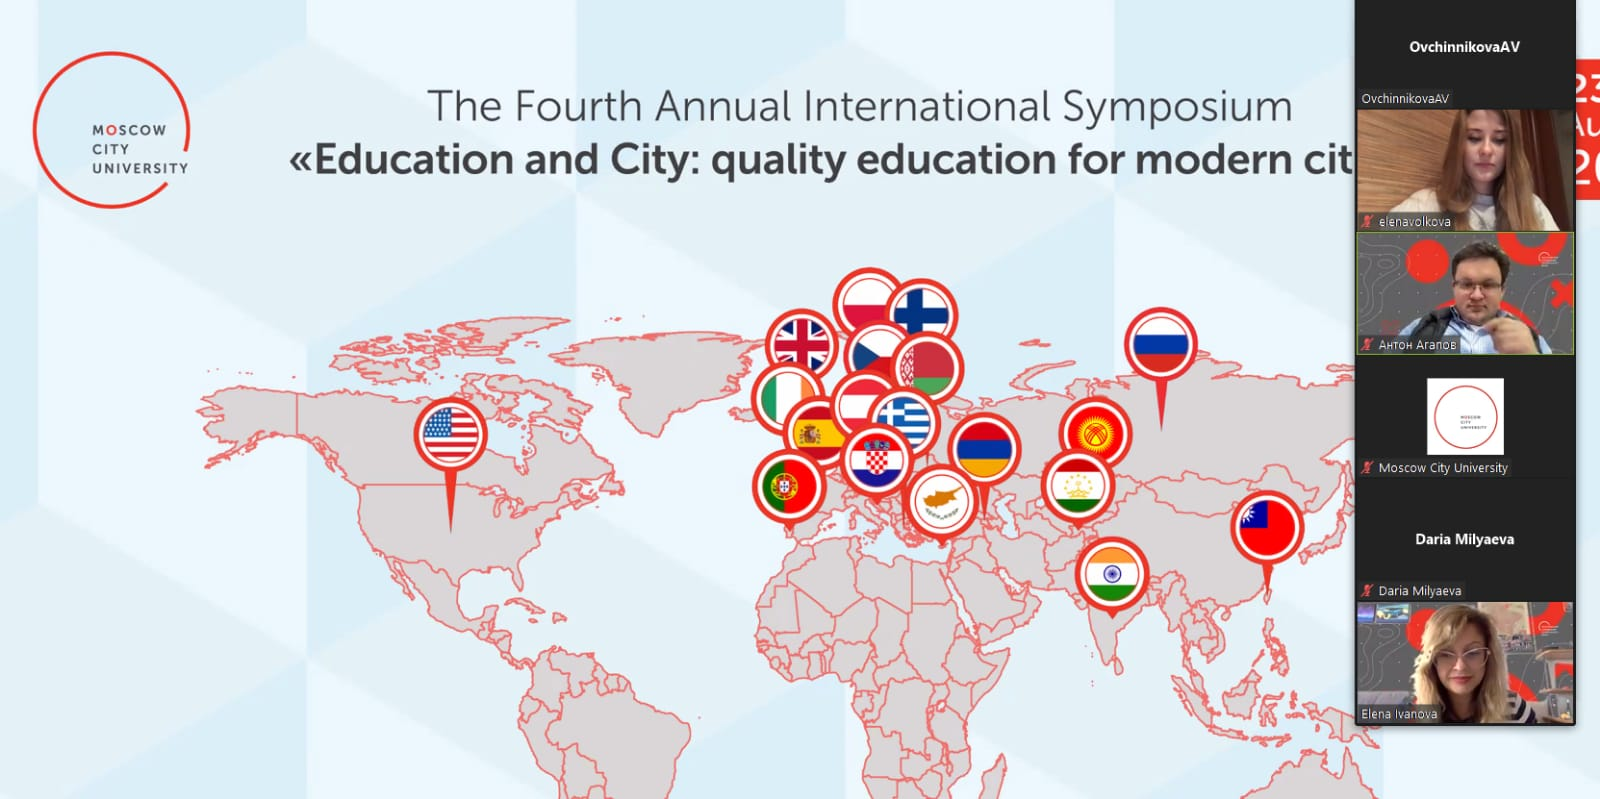 The 4th Annual International Symposium Education and City: Day 3